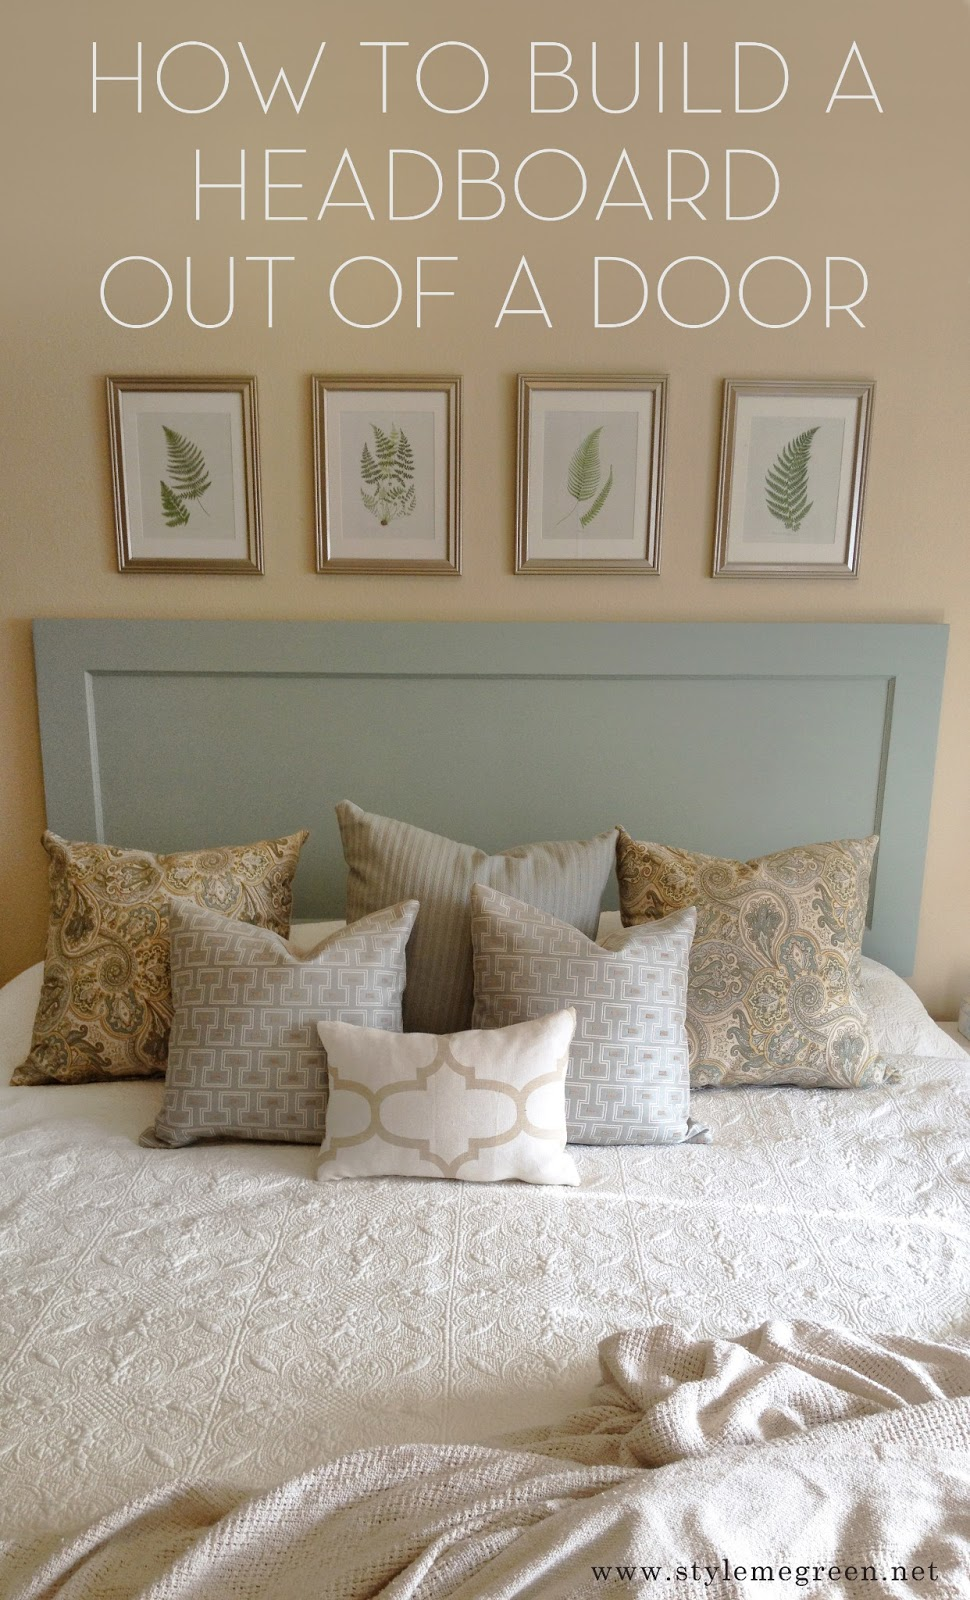 Make Your Own Headboard 50 Outstanding Diy Headboard Ideas To Spice Up Your Bedroom .